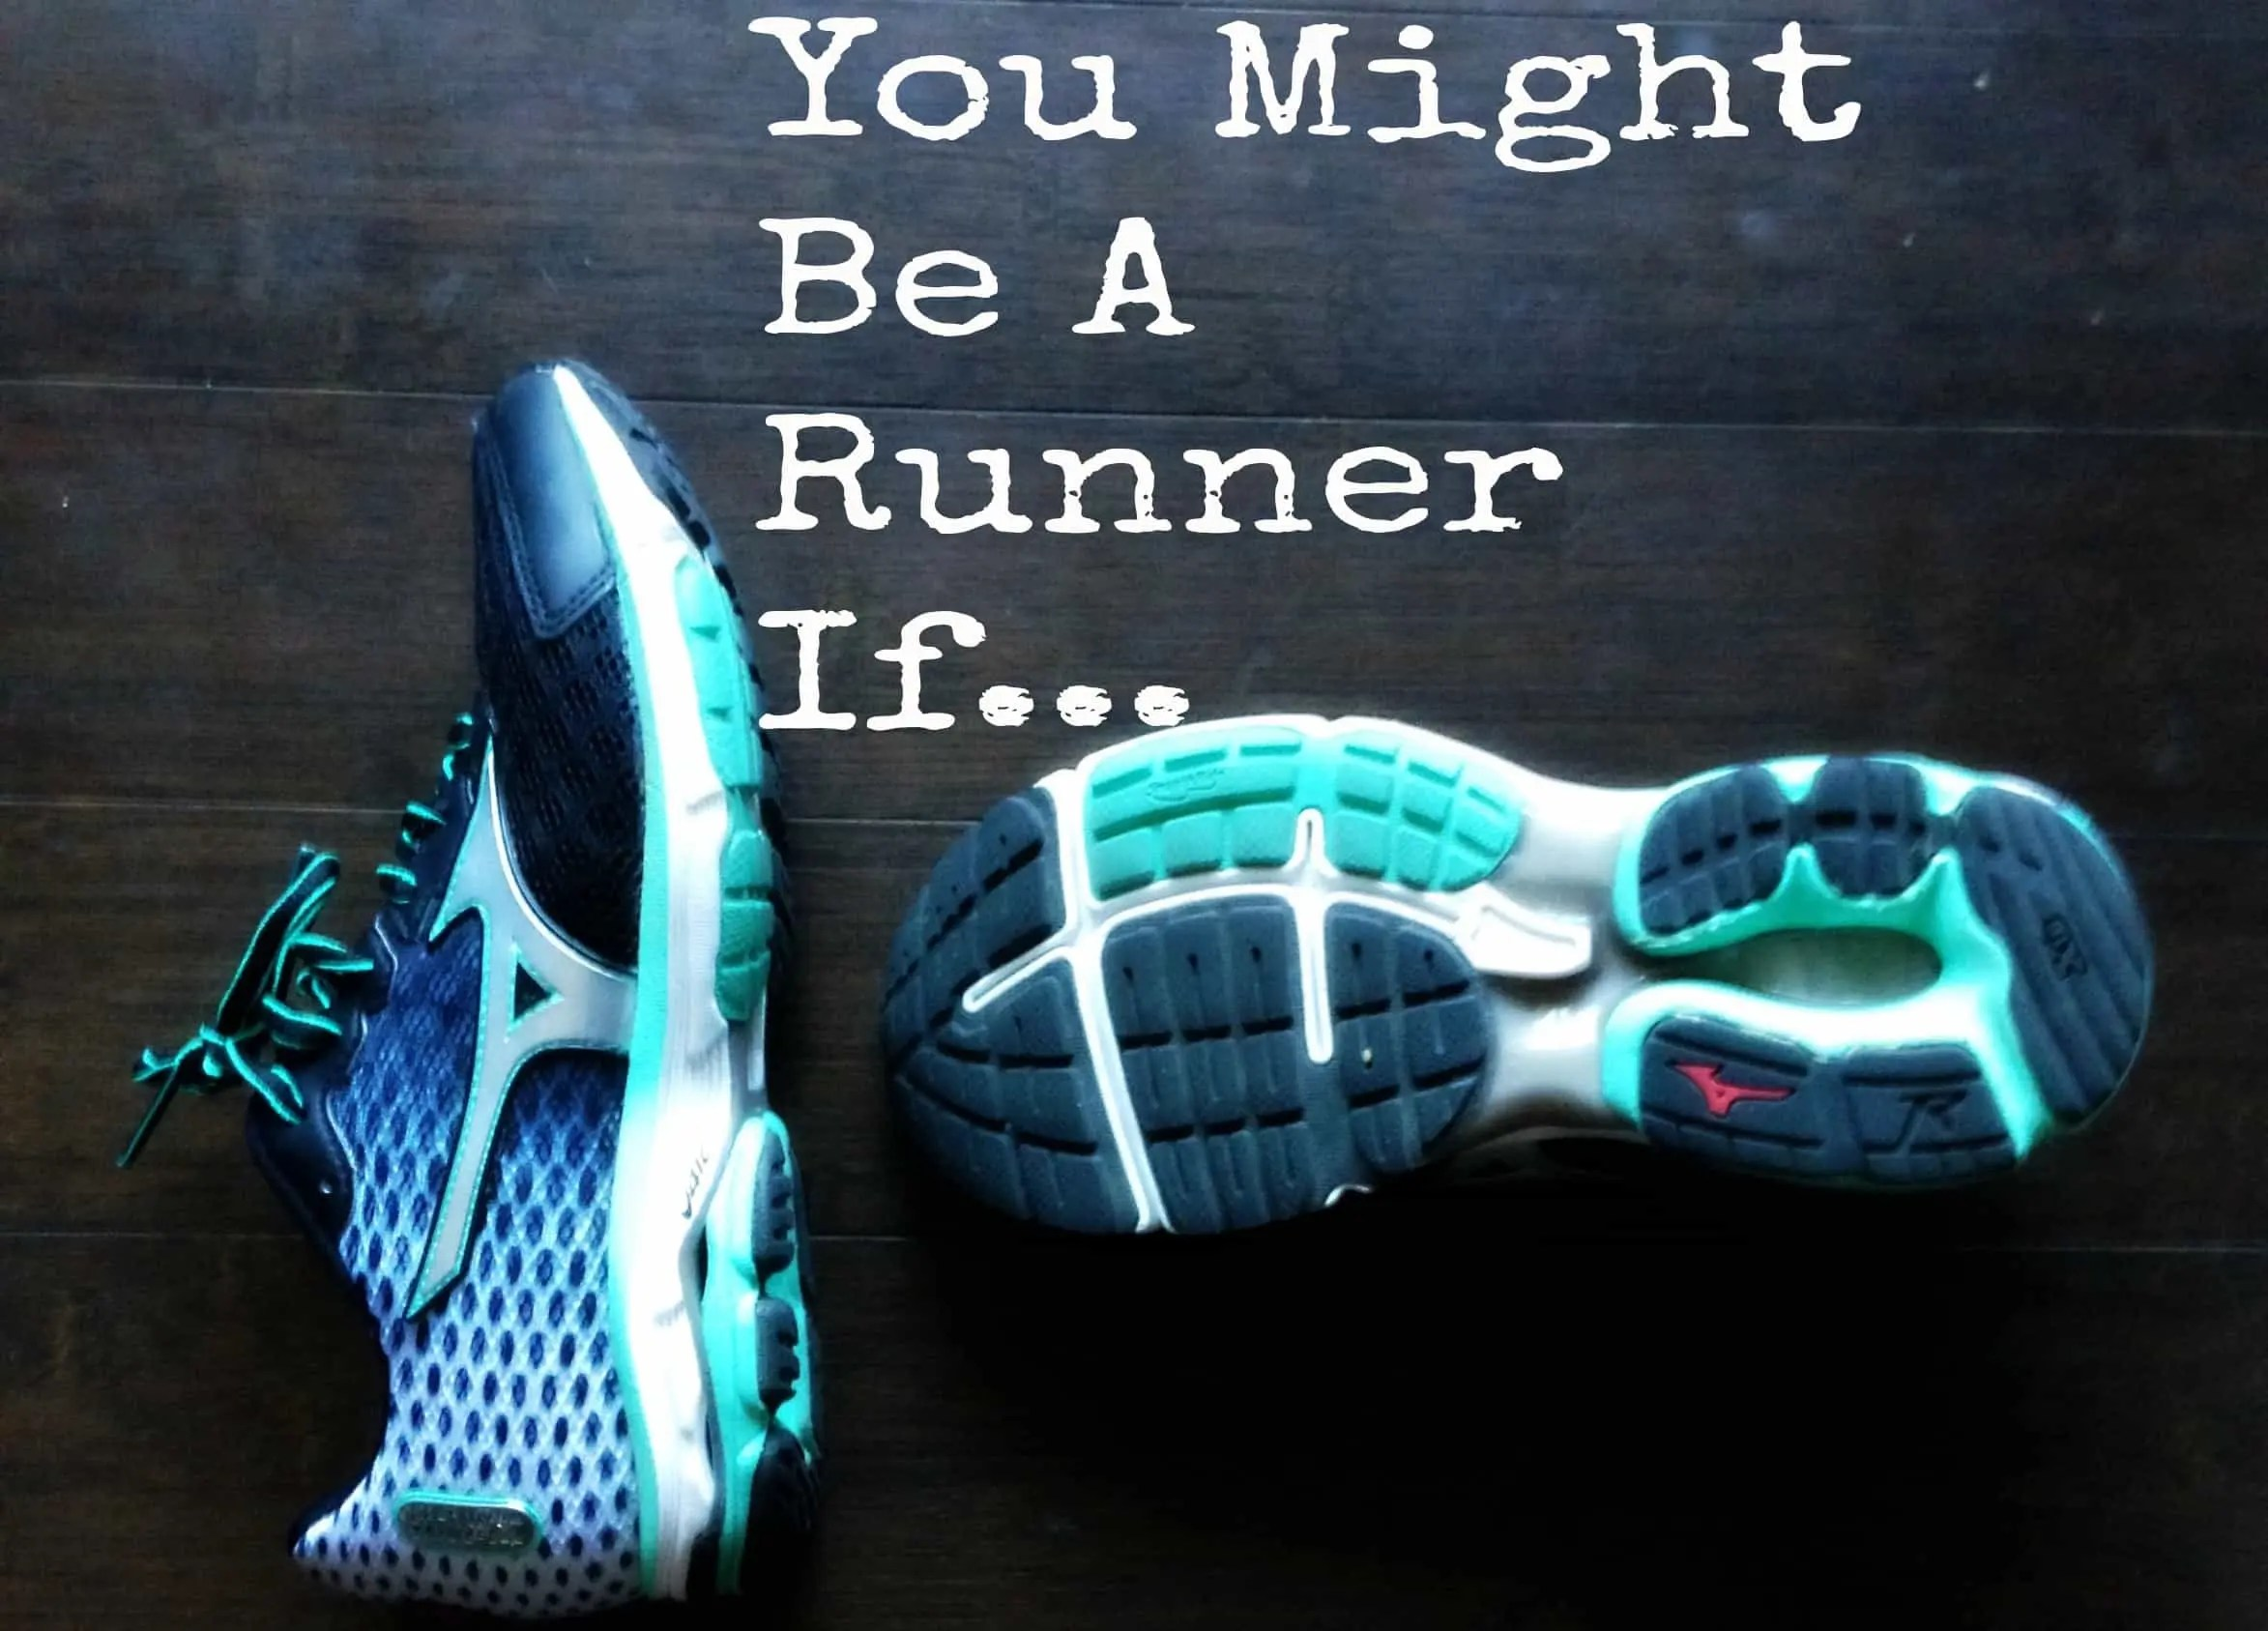 You might be a runner if